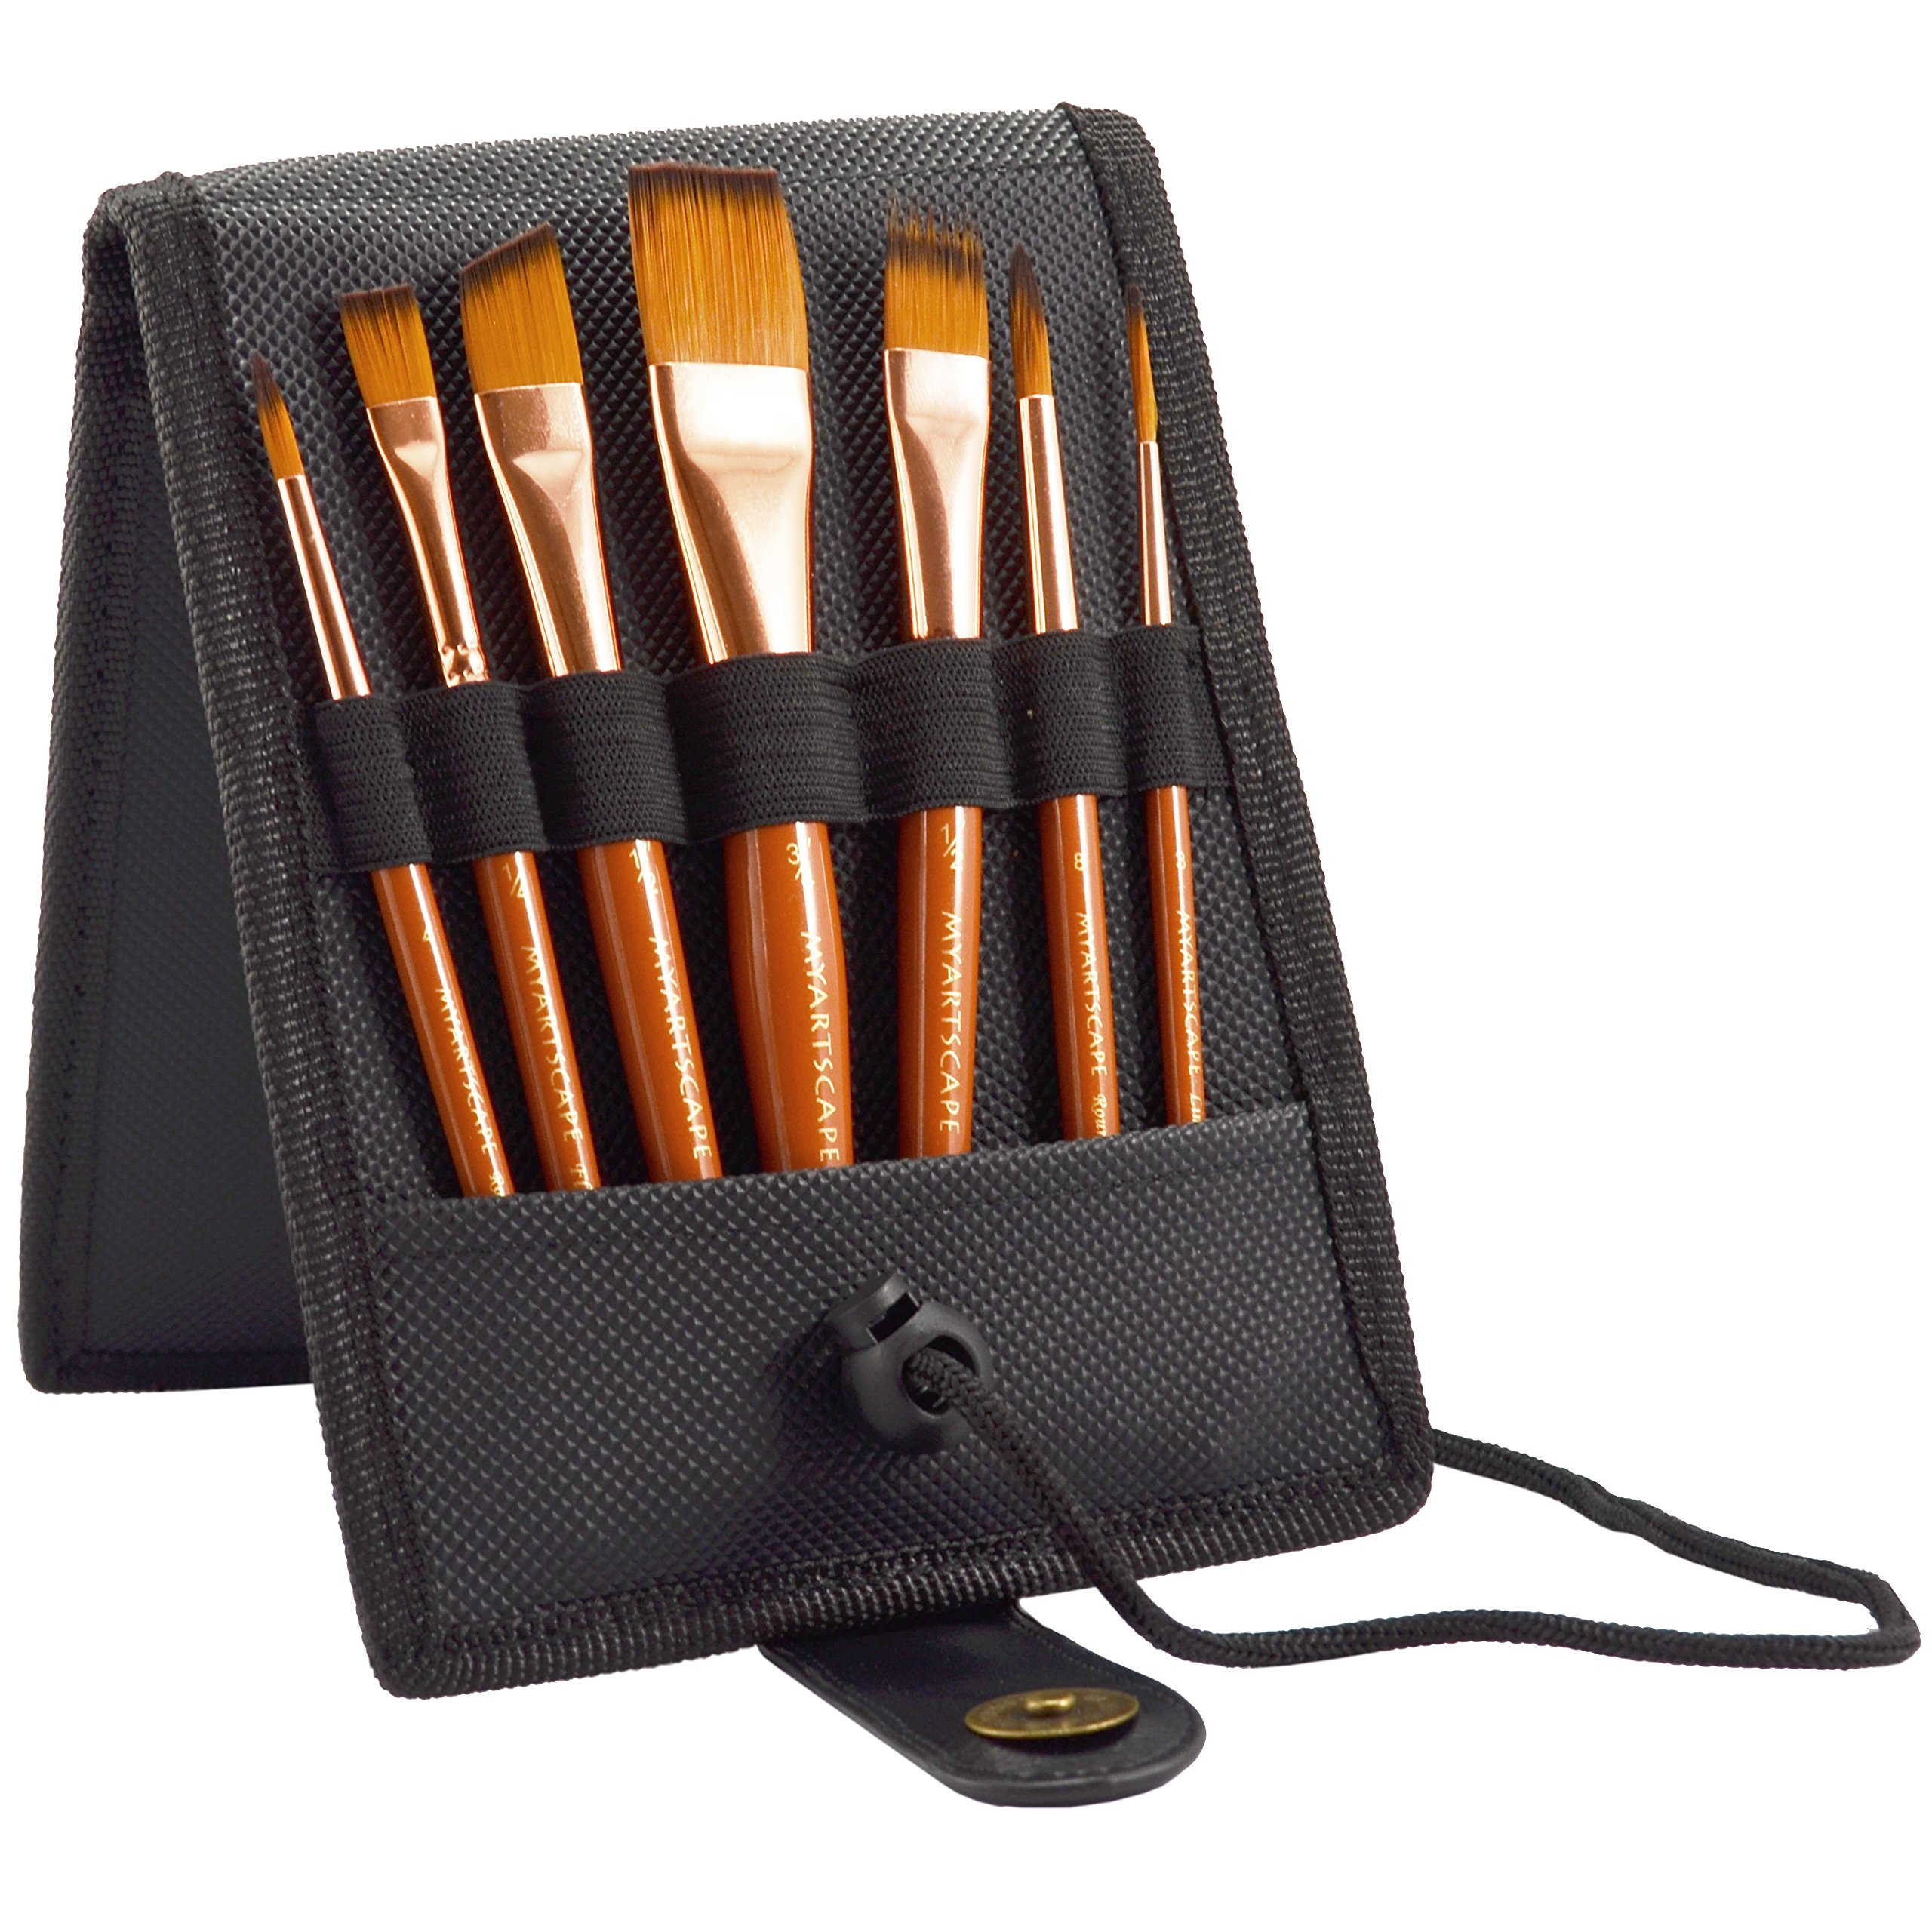 Paint Brush Set - 7 Travel Brushes for Acrylic, Oil, Watercolour, Gouache and Plein Air Painting - Ultra Short Handle - Professional Artist Carry Case (Black) - 1 Year Warranty by Myartscape